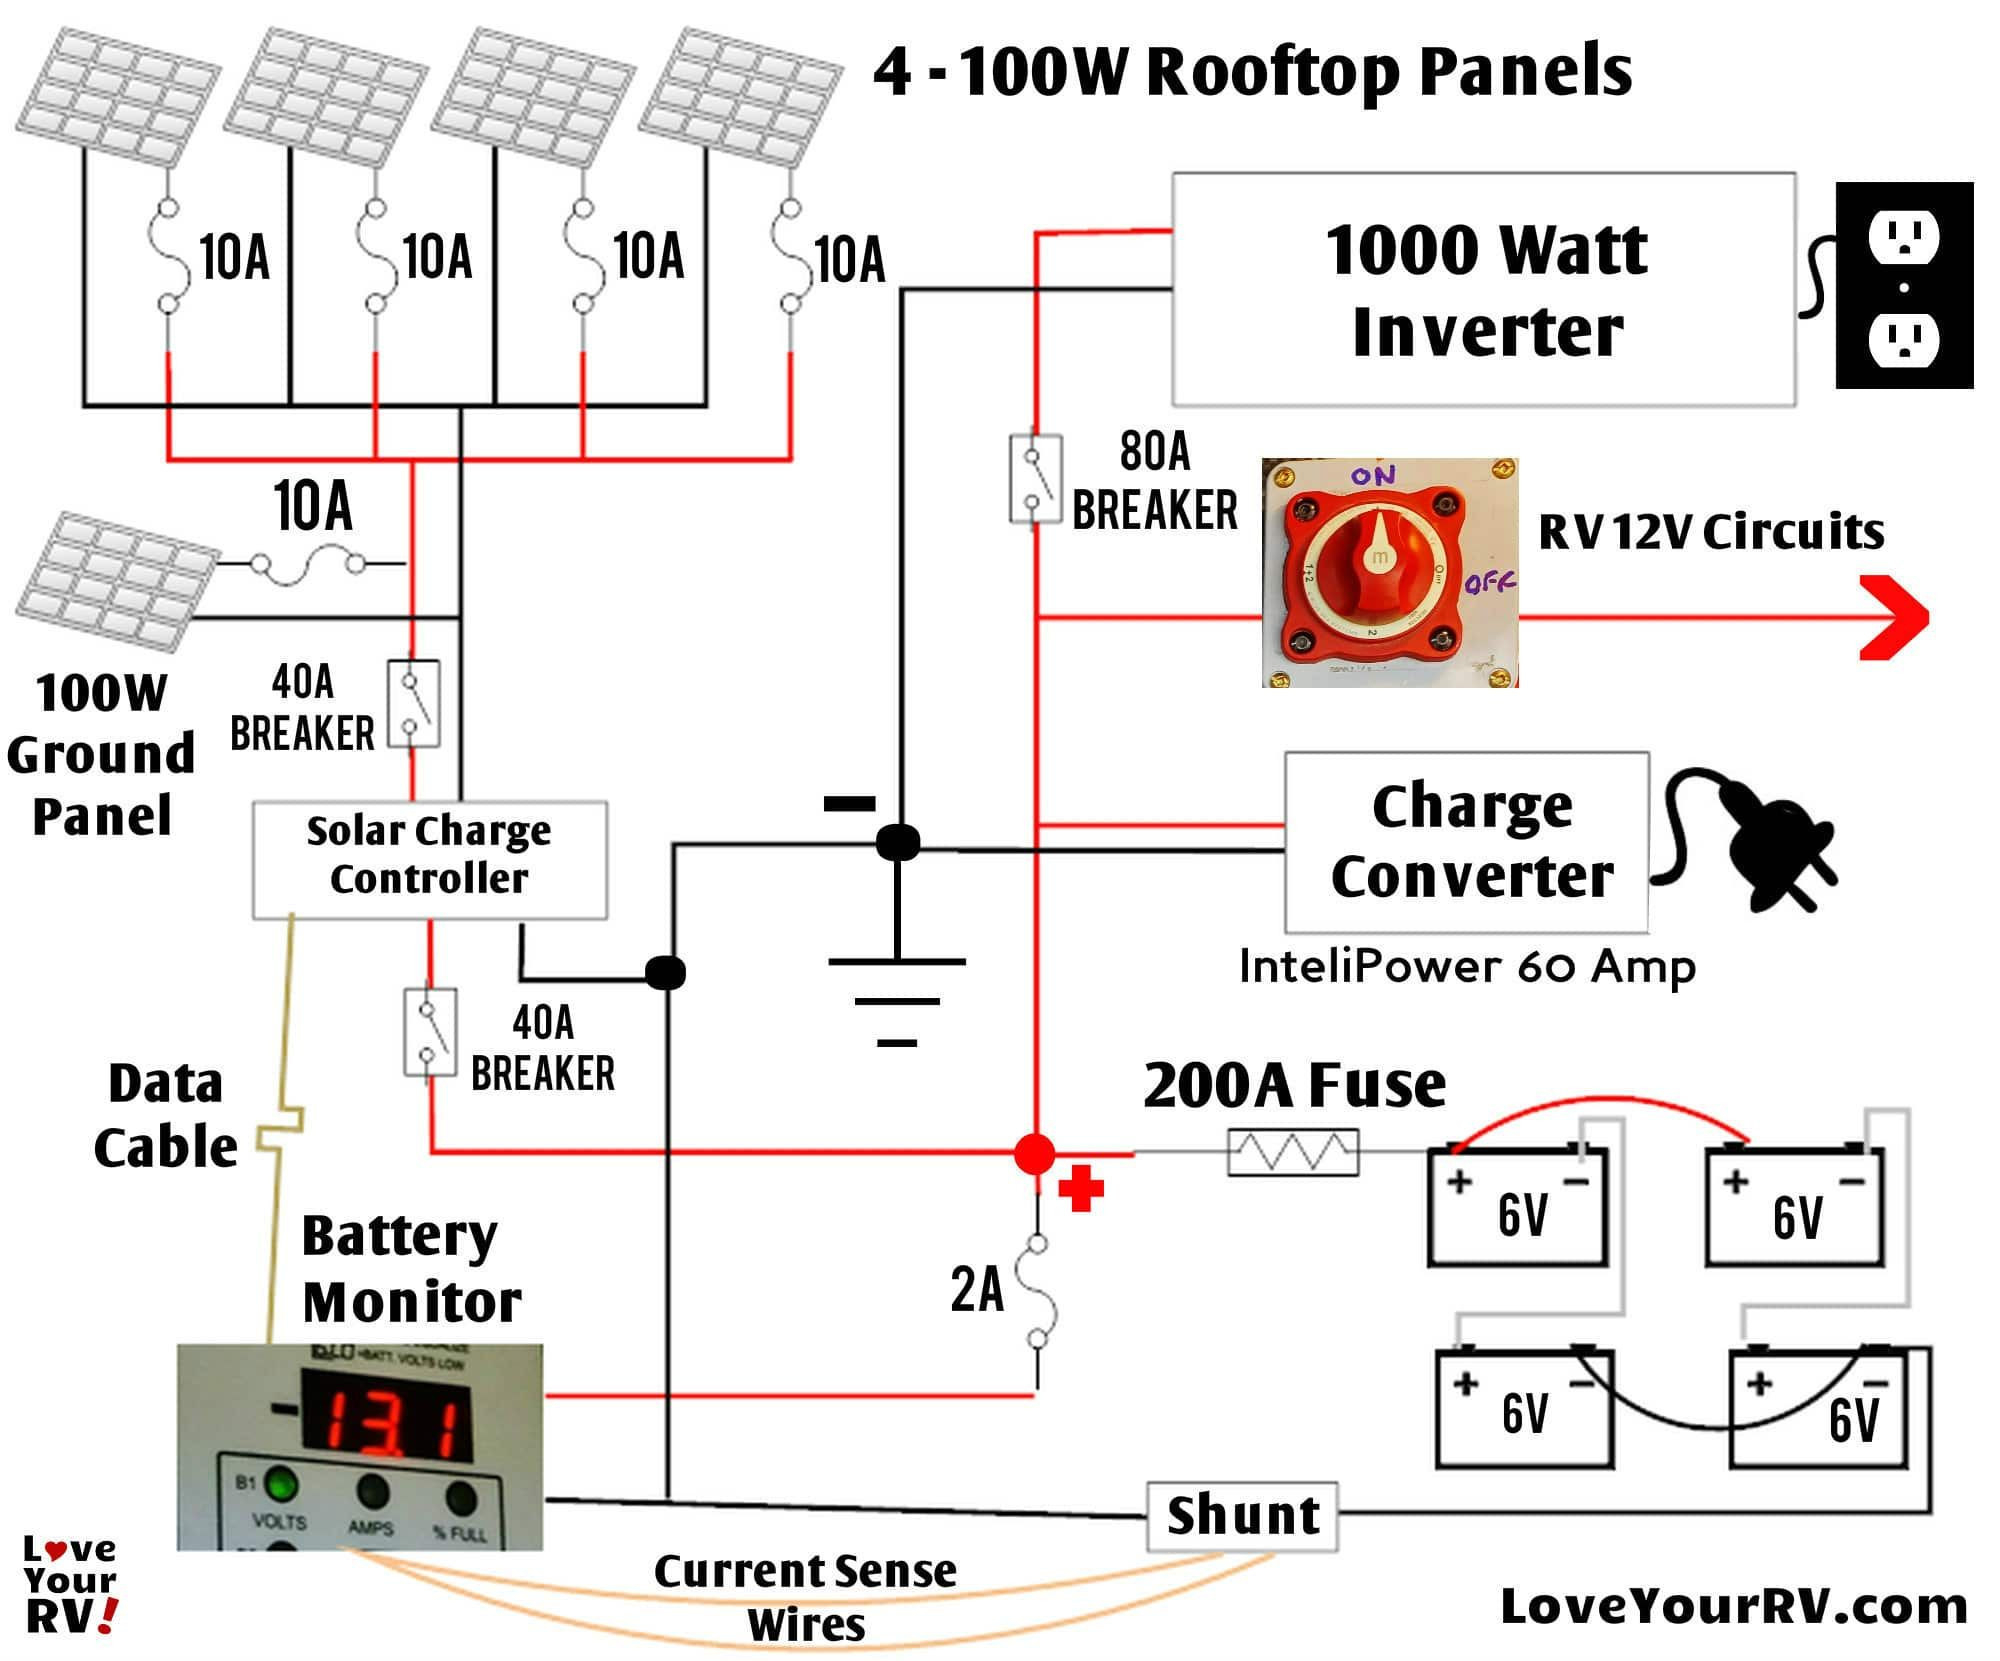 solar array wiring diagram Collection-Wiring Diagram solar Panel System New Detailed Look at Our Diy Rv Boondocking Power System 19-r